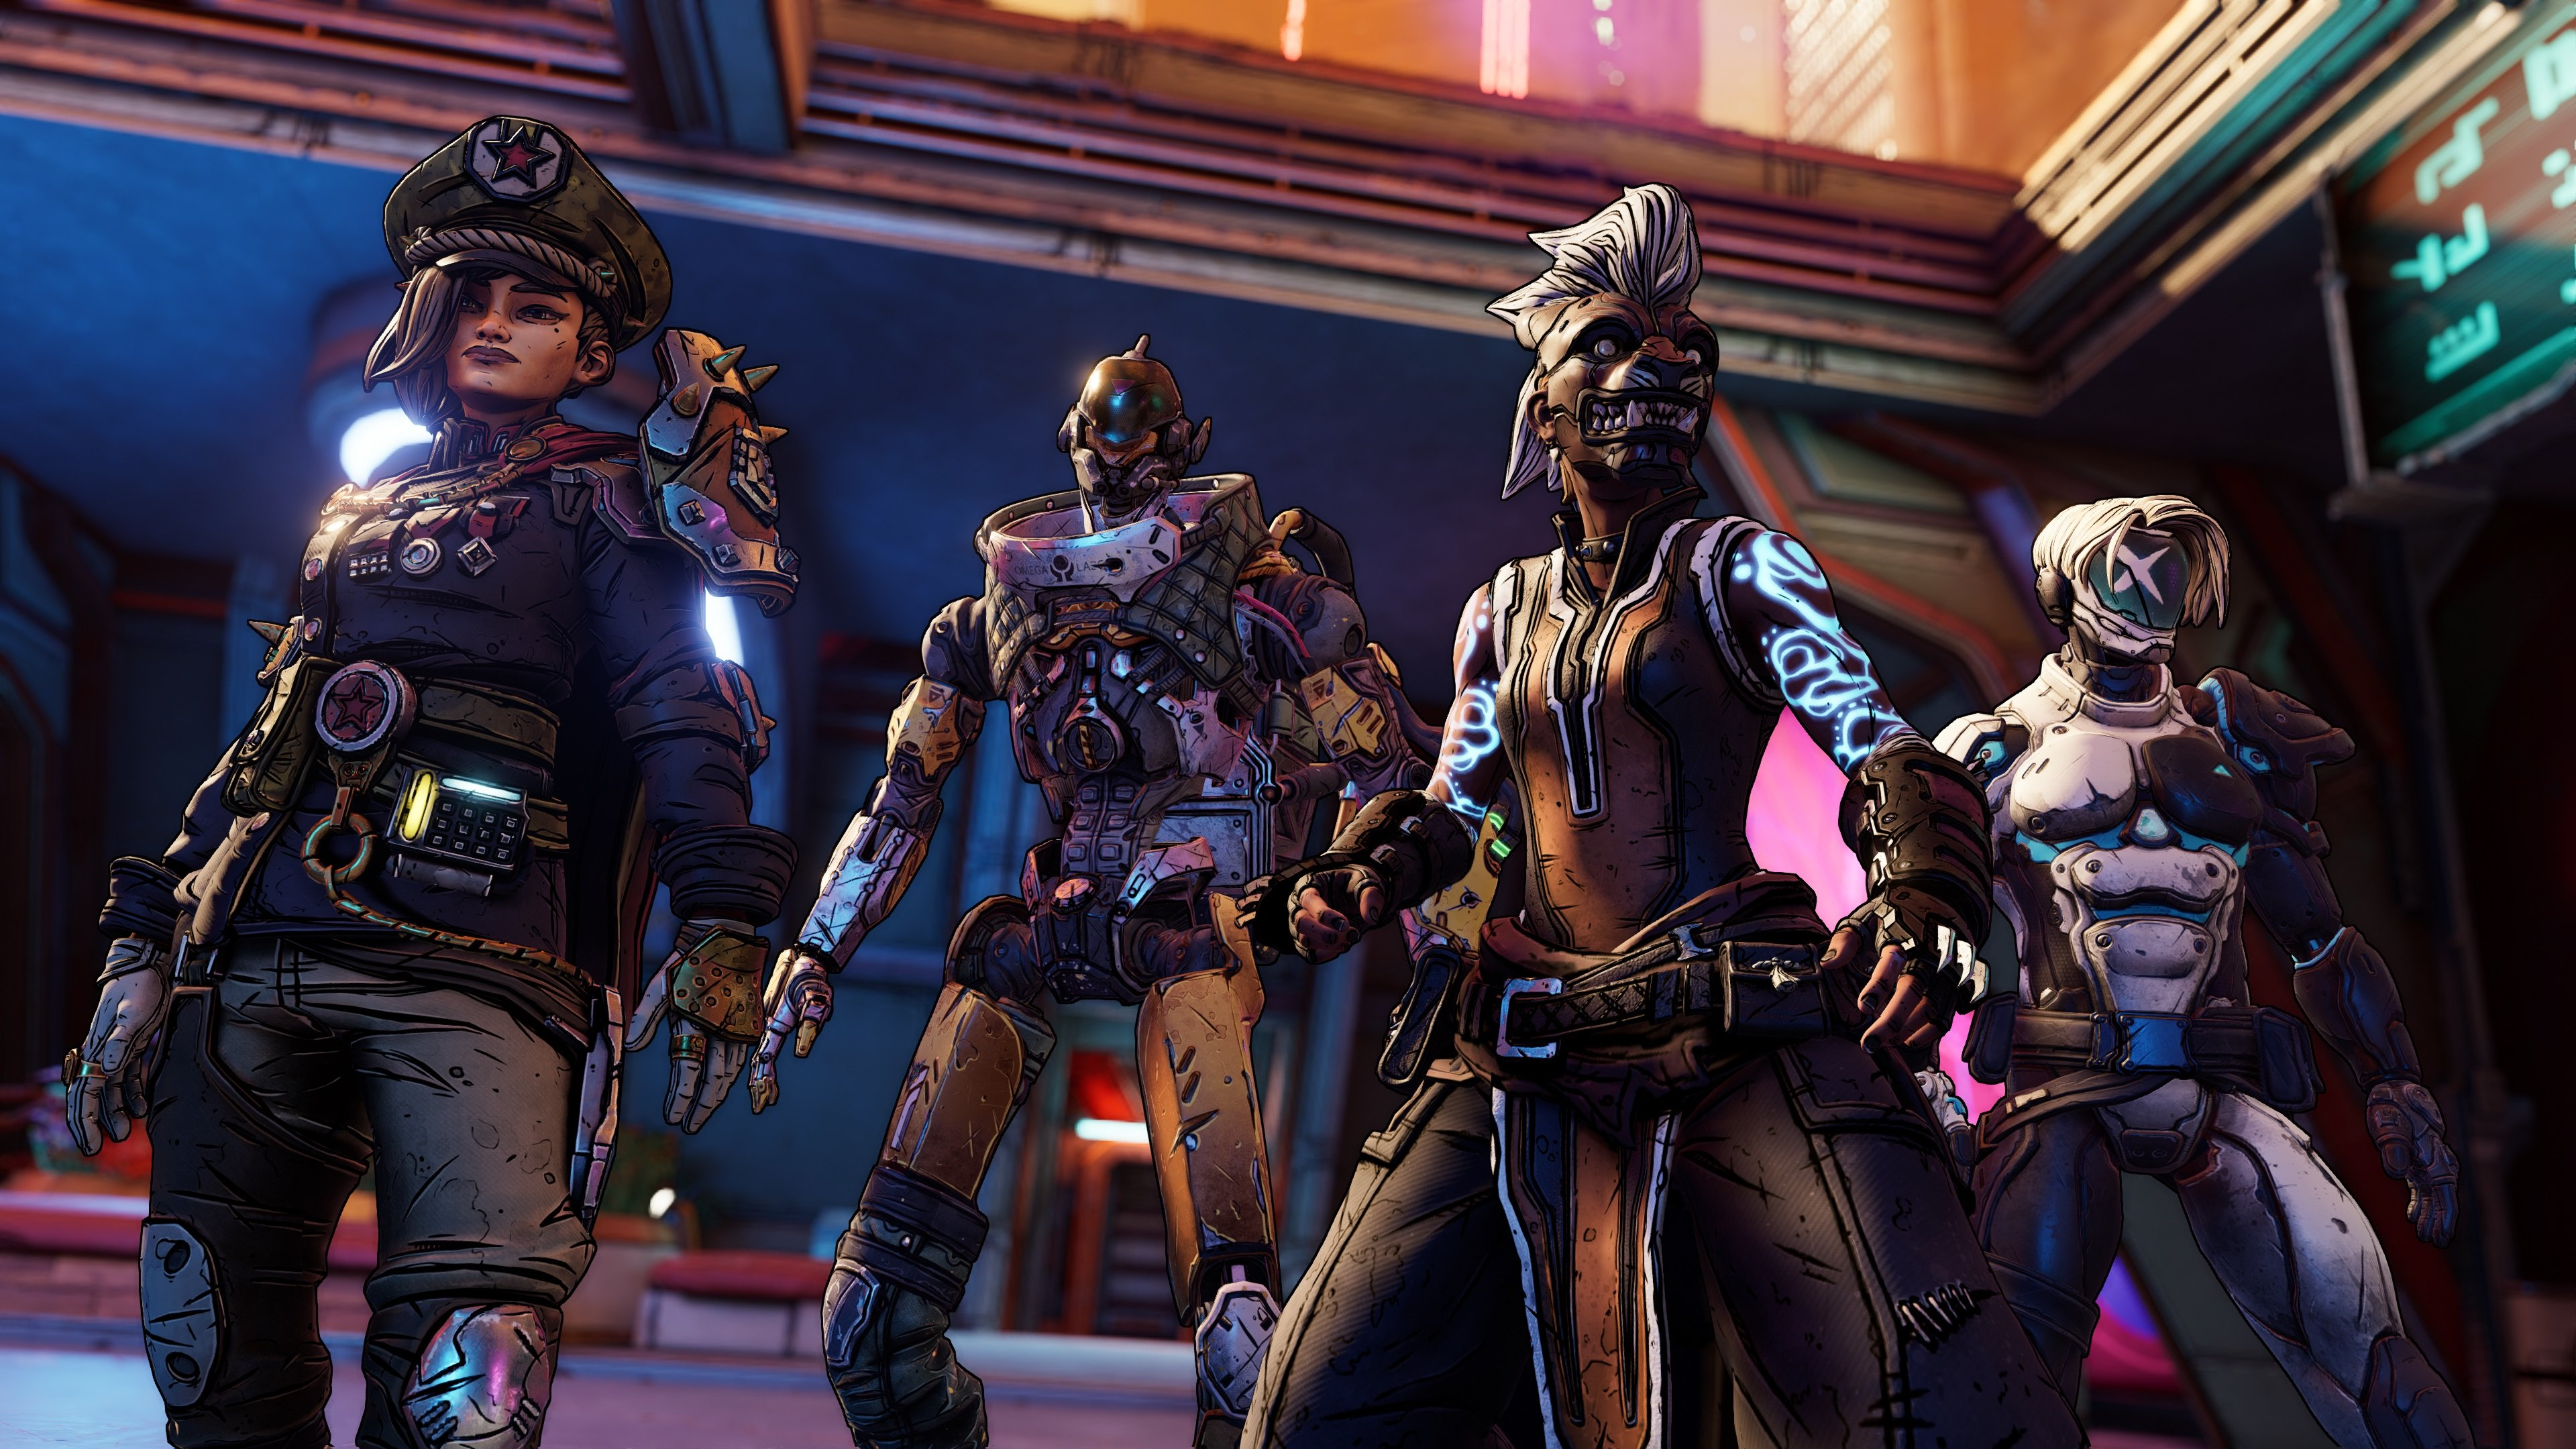 Gearbox finally tells us what Borderlands 3's Arms Race mode is, unveils 'Final Form' skins screenshot